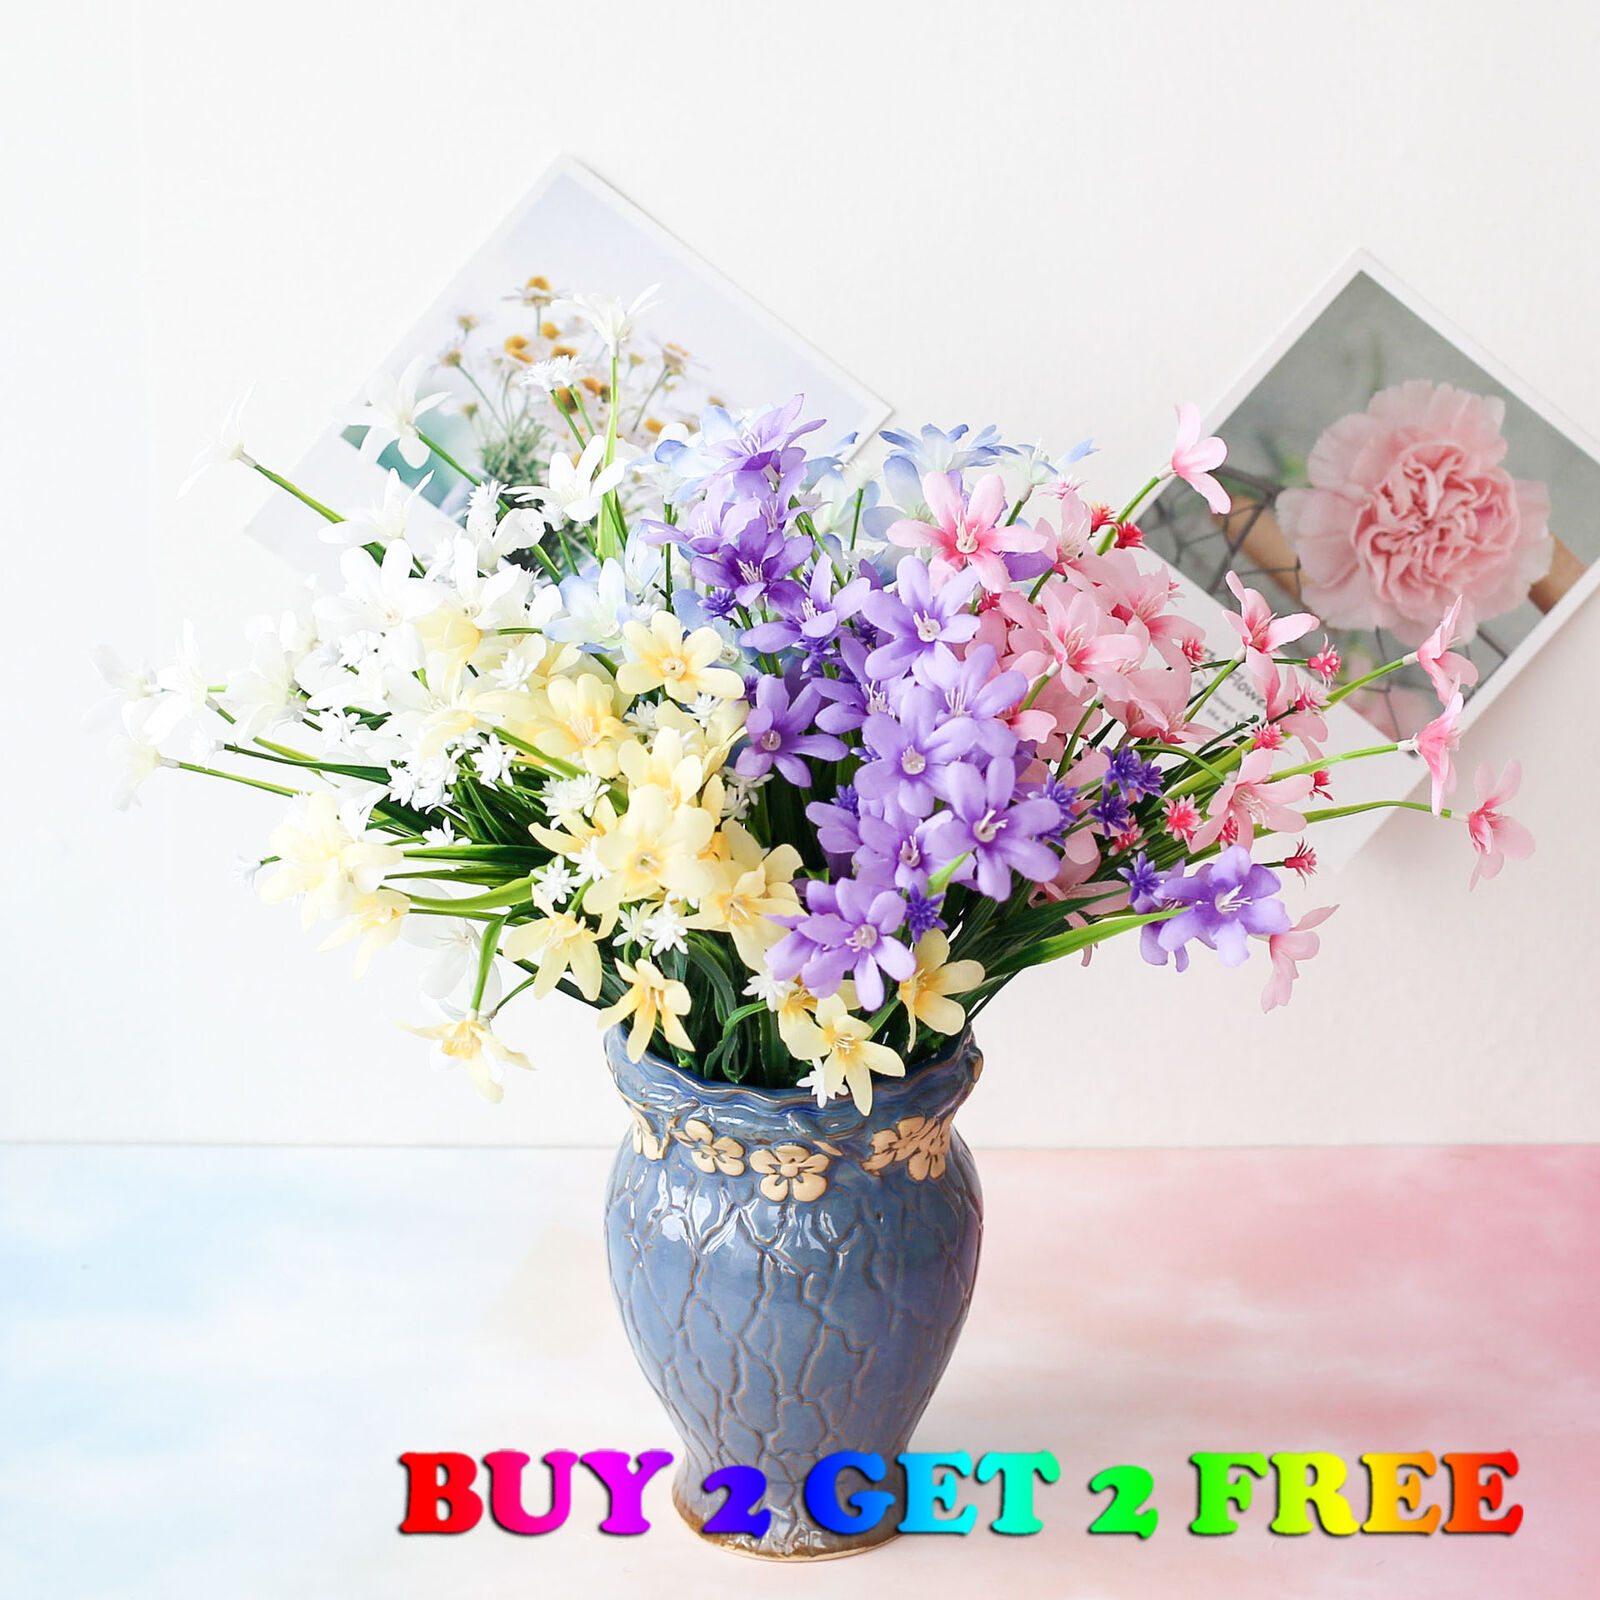 White Ceramic Flower Vase For Home Decoration With Natural Flowers Artificial For Sale Online Ebay